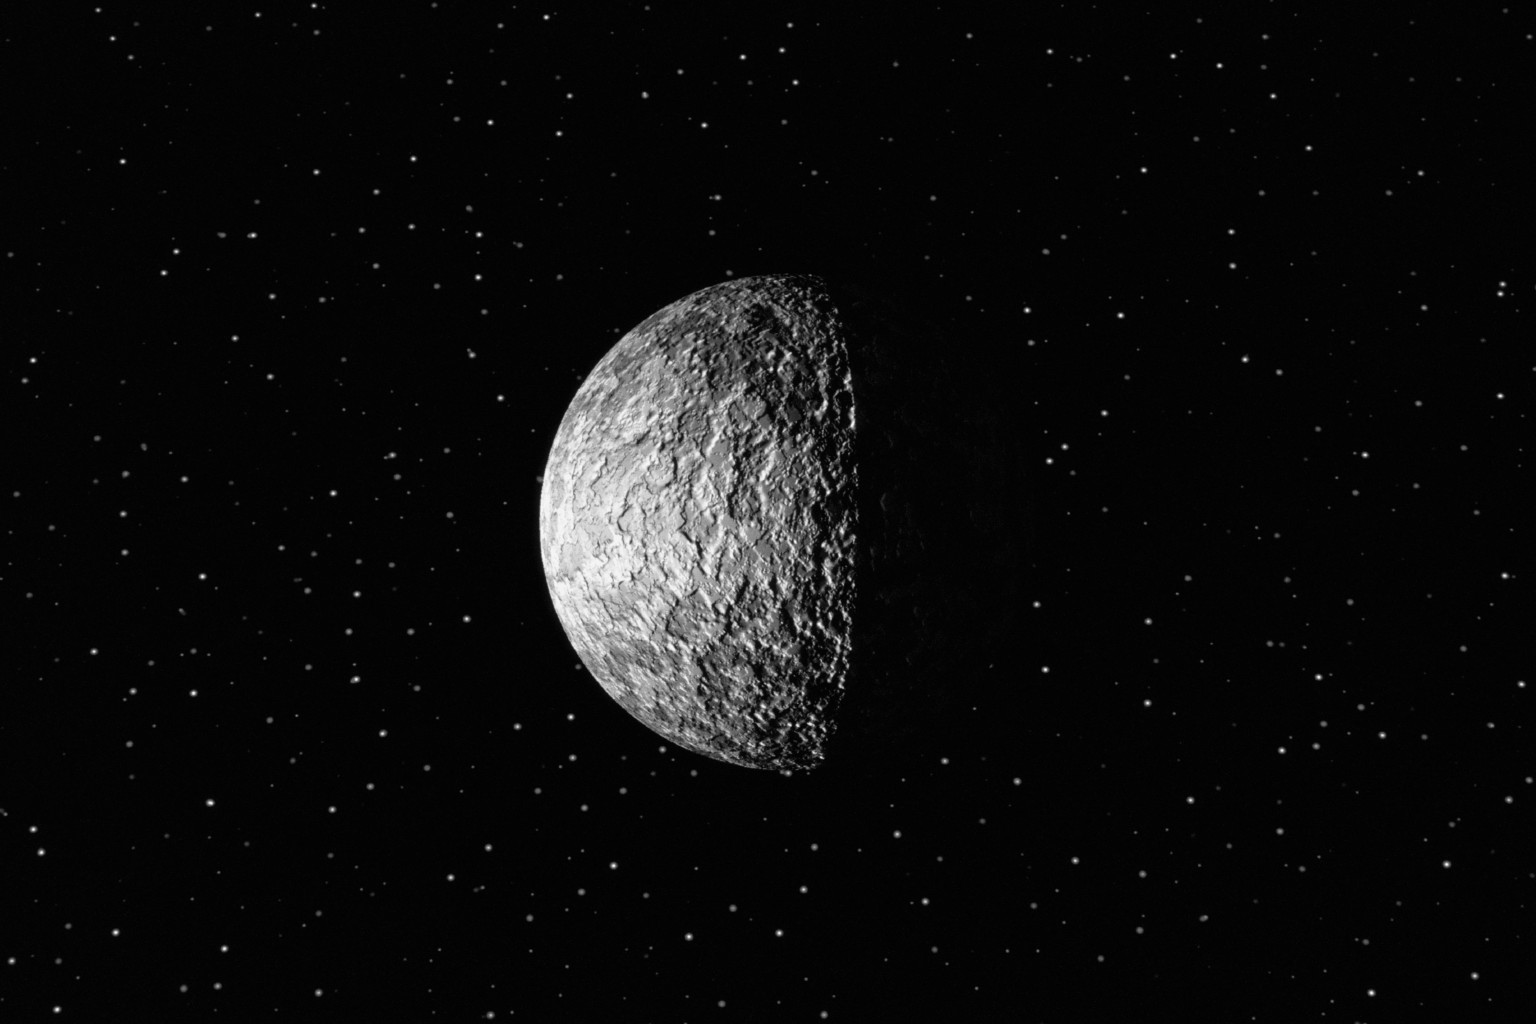 Styx Pluto S Moon: 'Star Trek' May Inspire Names For Pluto's Craters